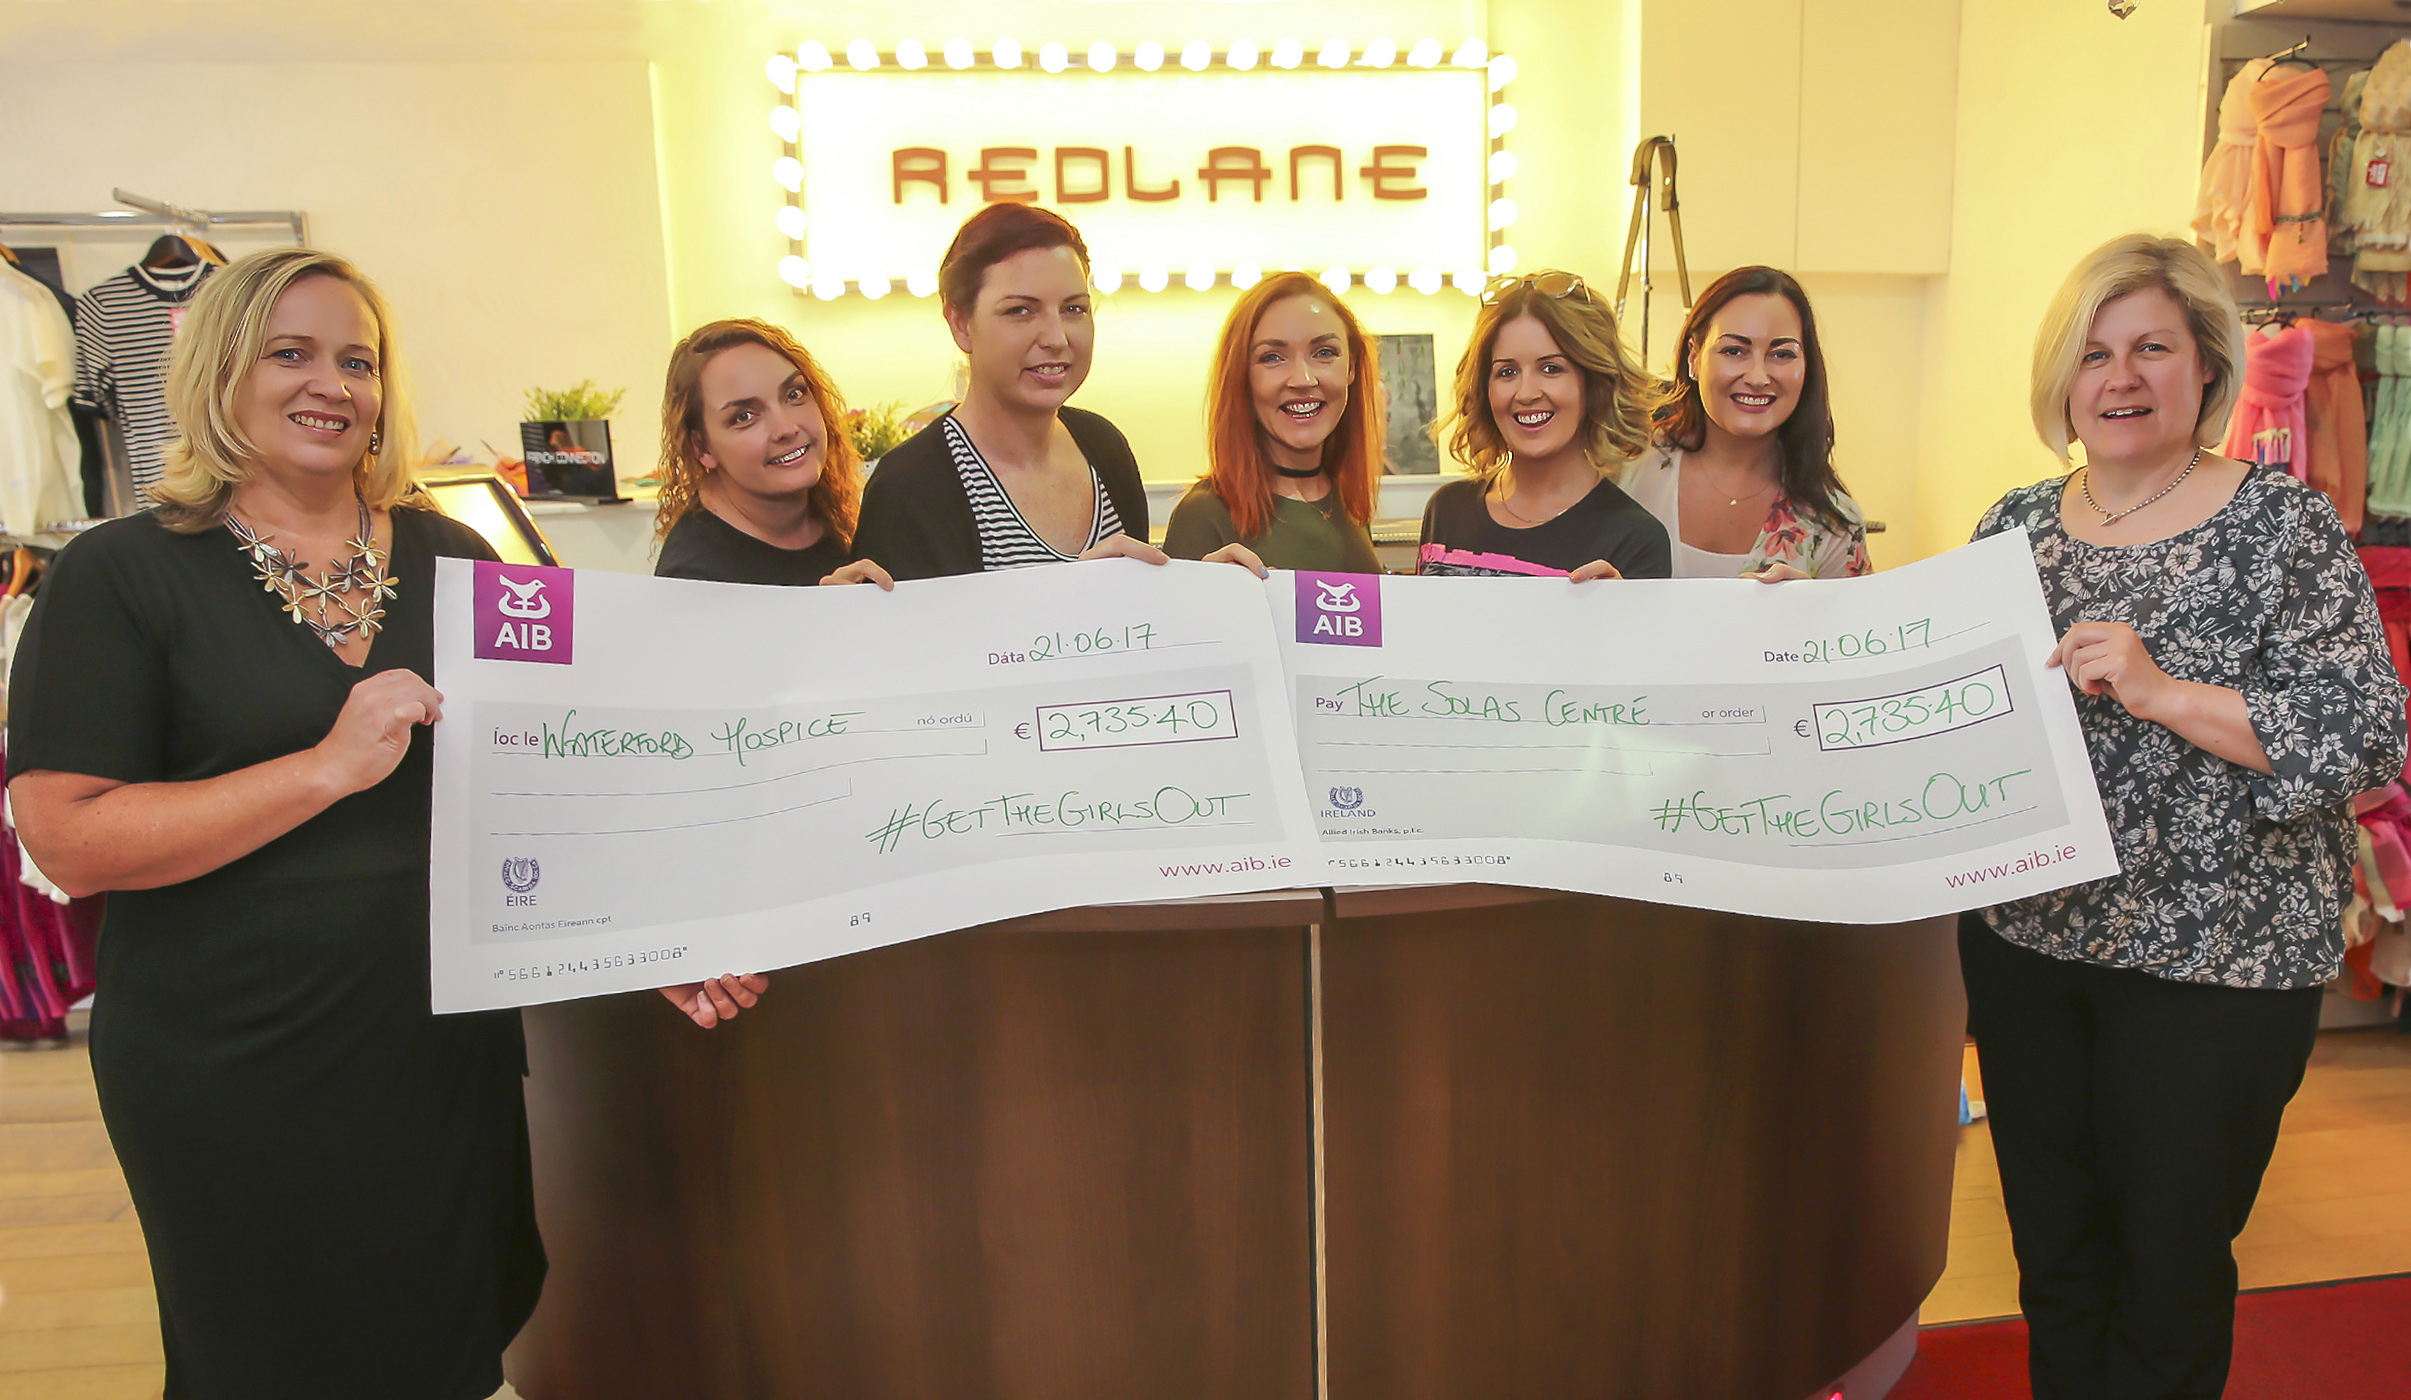 'Get The Girls Out' raises over €5,000 for Waterford Hospice and The Solas Cancer Support Centre